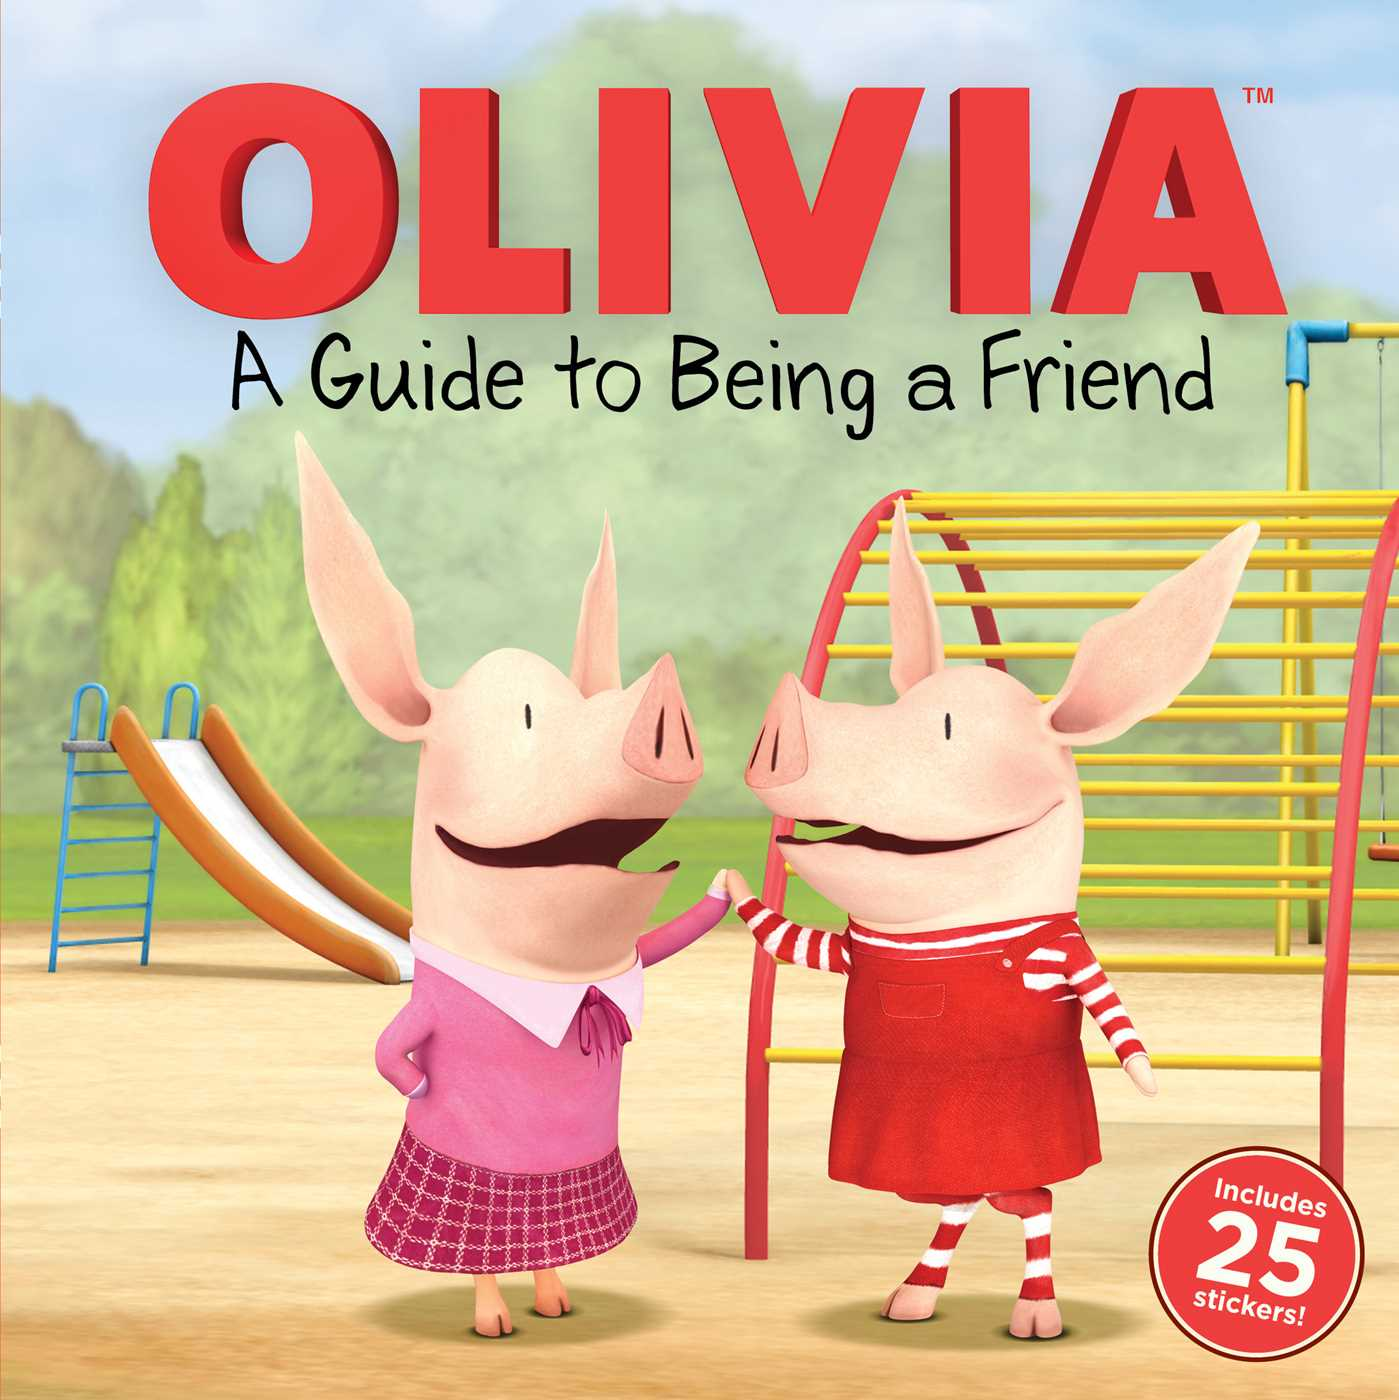 A-guide-to-being-a-friend-9781481417068_hr